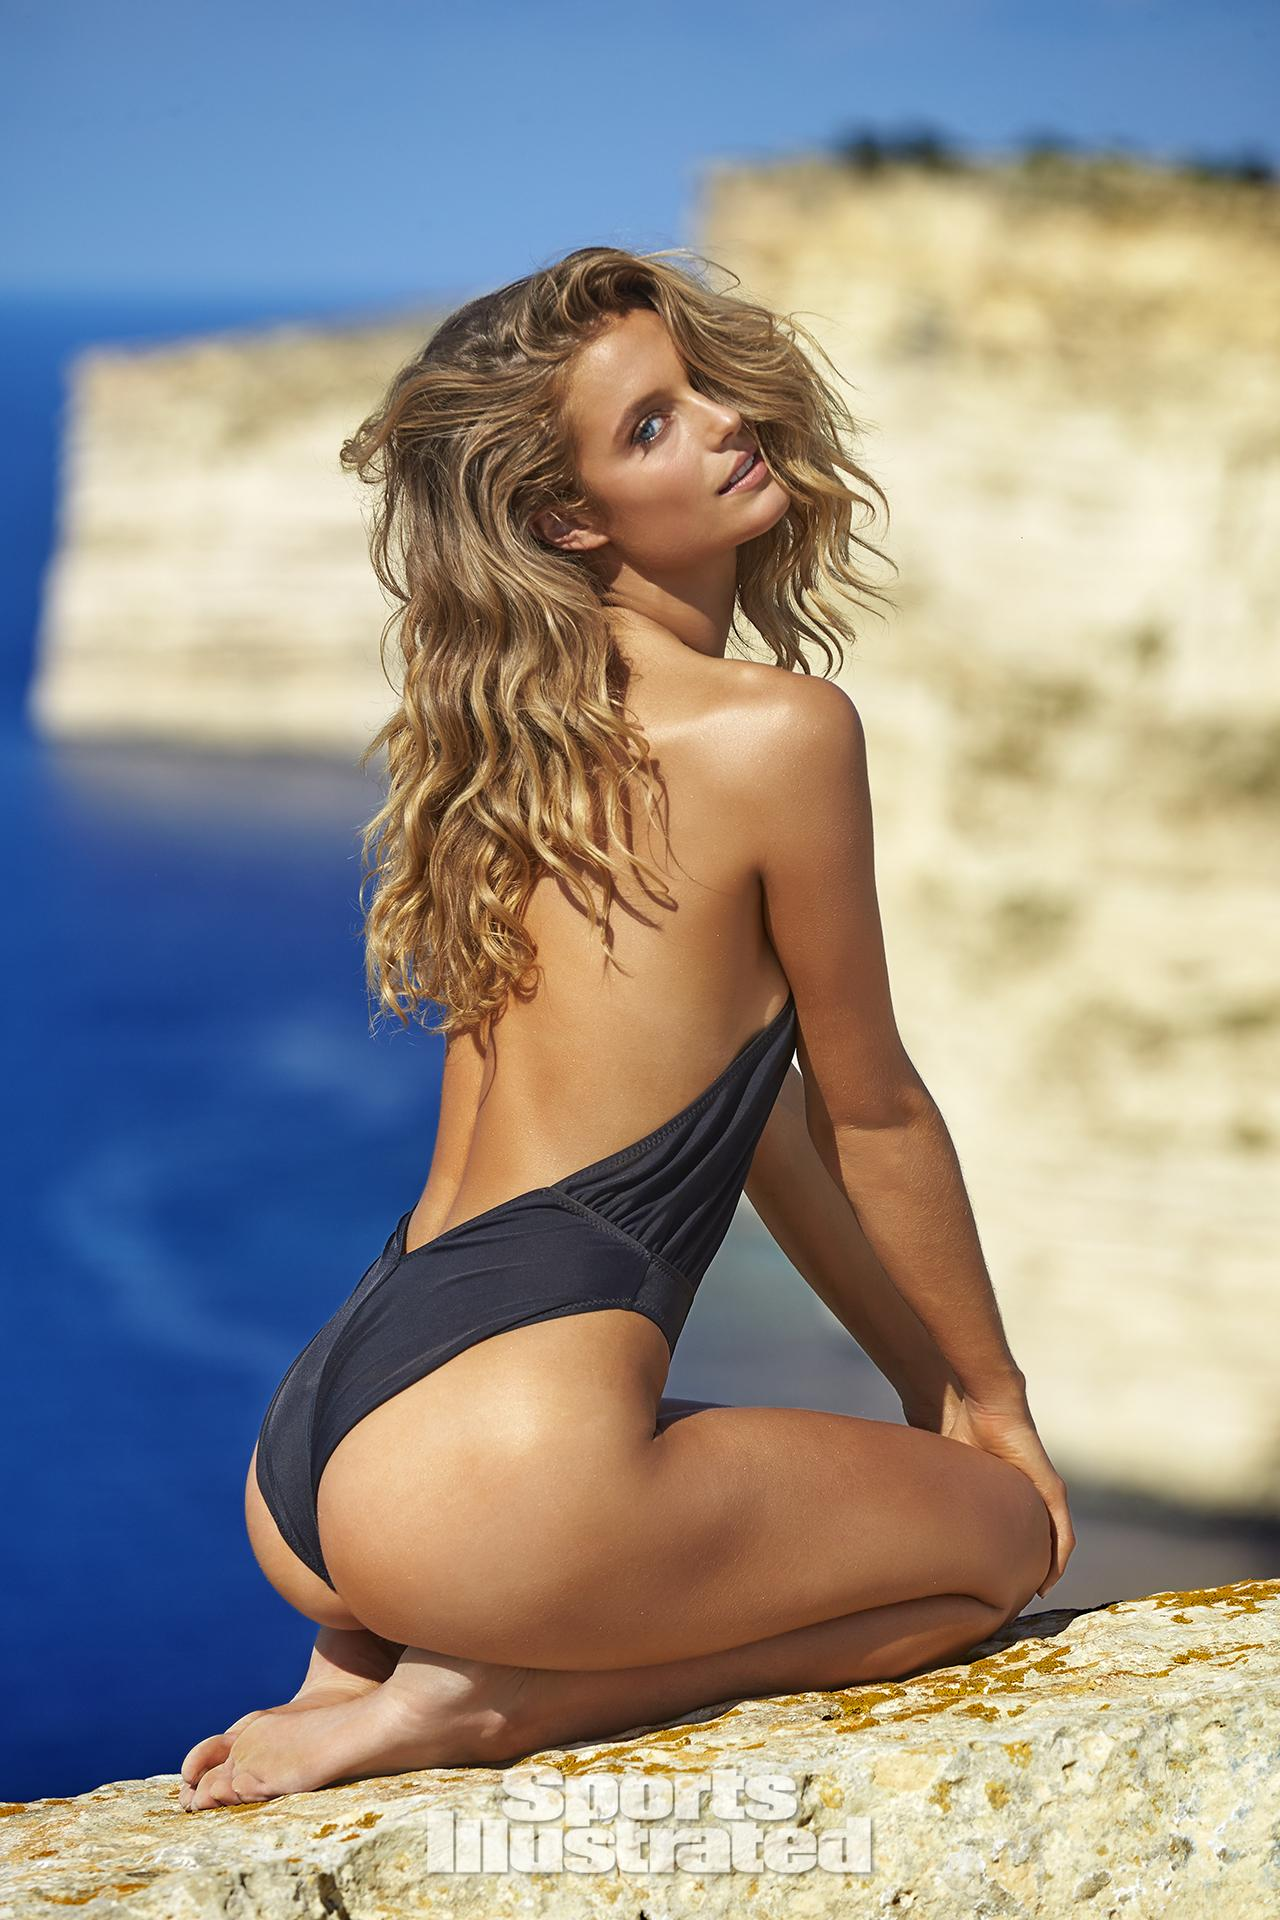 caf34d8cc4506 Lizbell Agency - Kate Bock shoots Sports Illustrated for the 3rd .